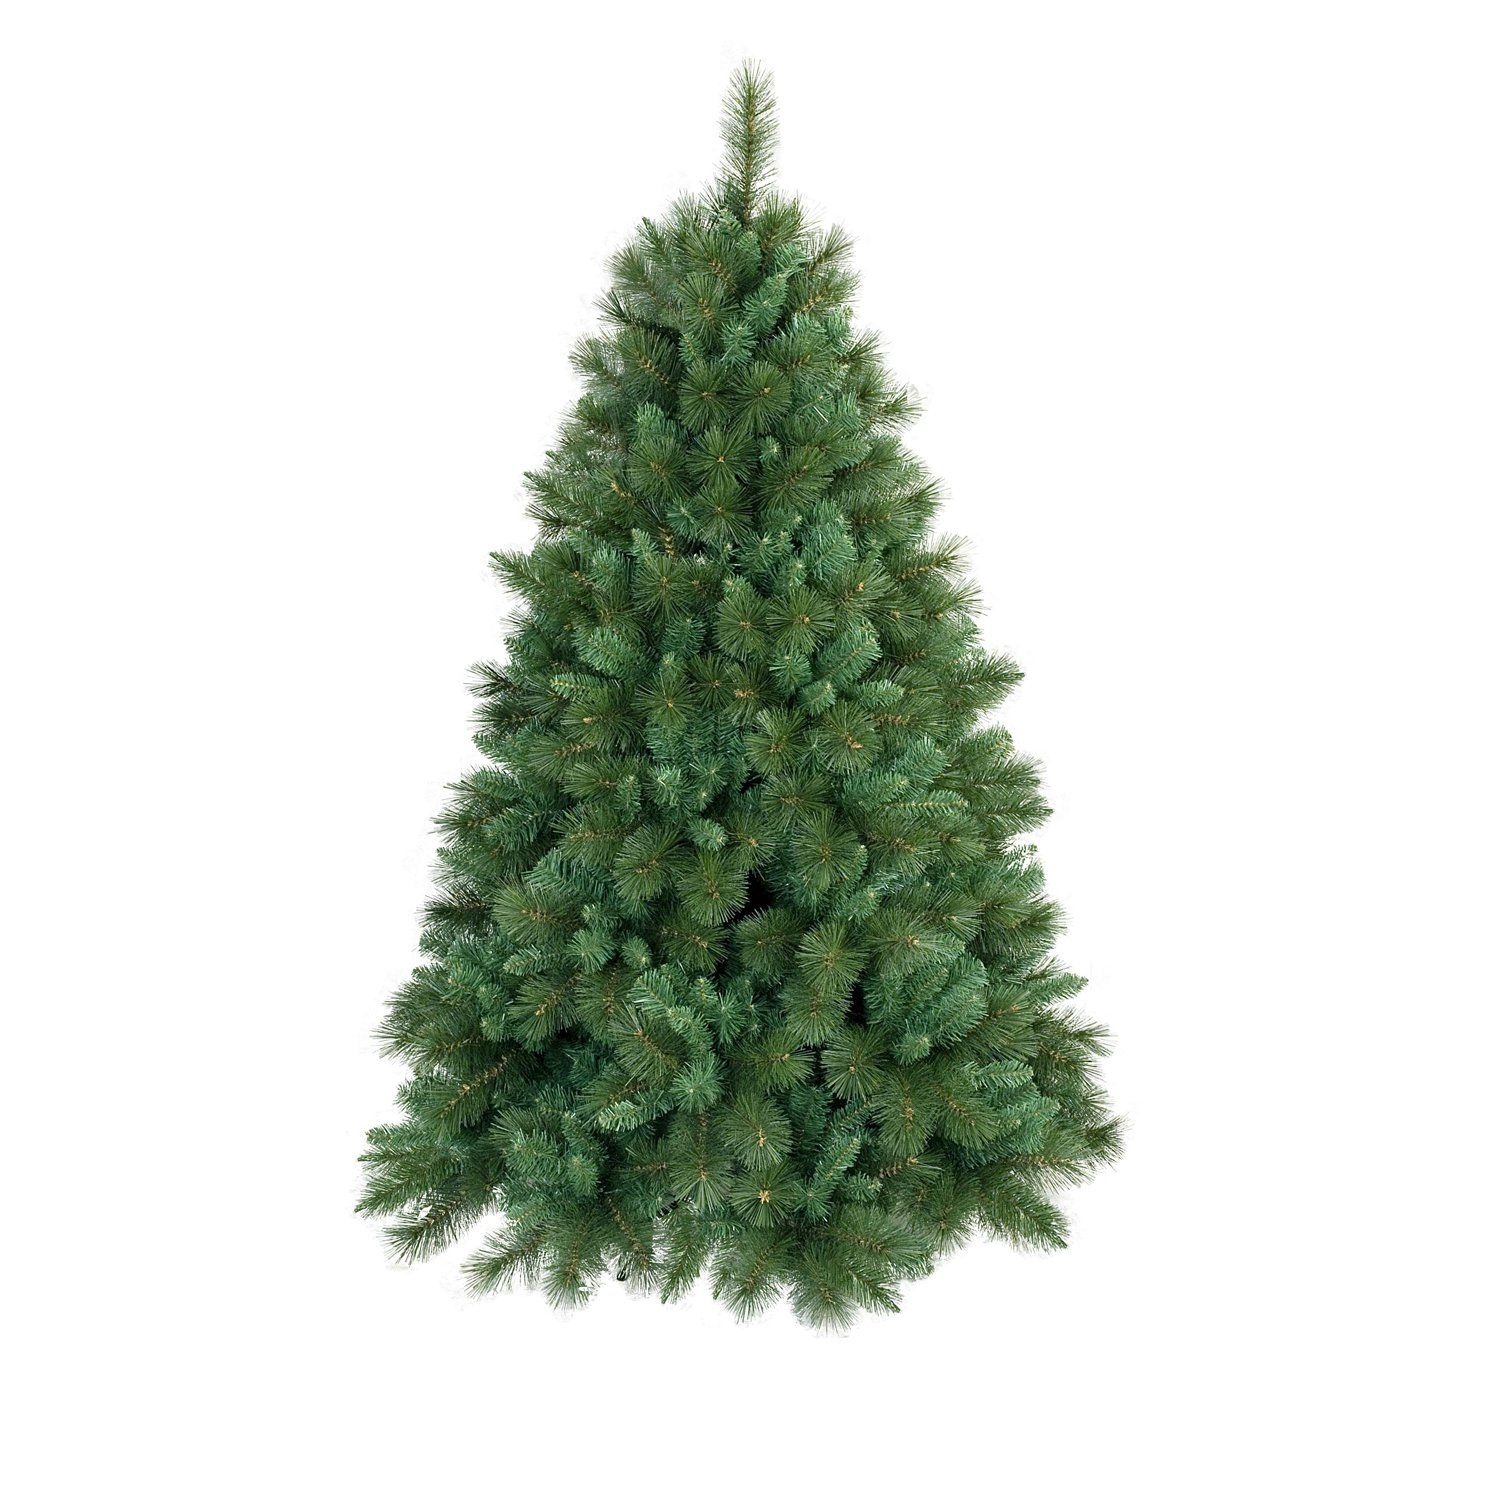 129 Nebraska Christmas Tree 7ft Home Store More Christmas Tree Tree Pine Christmas Tree